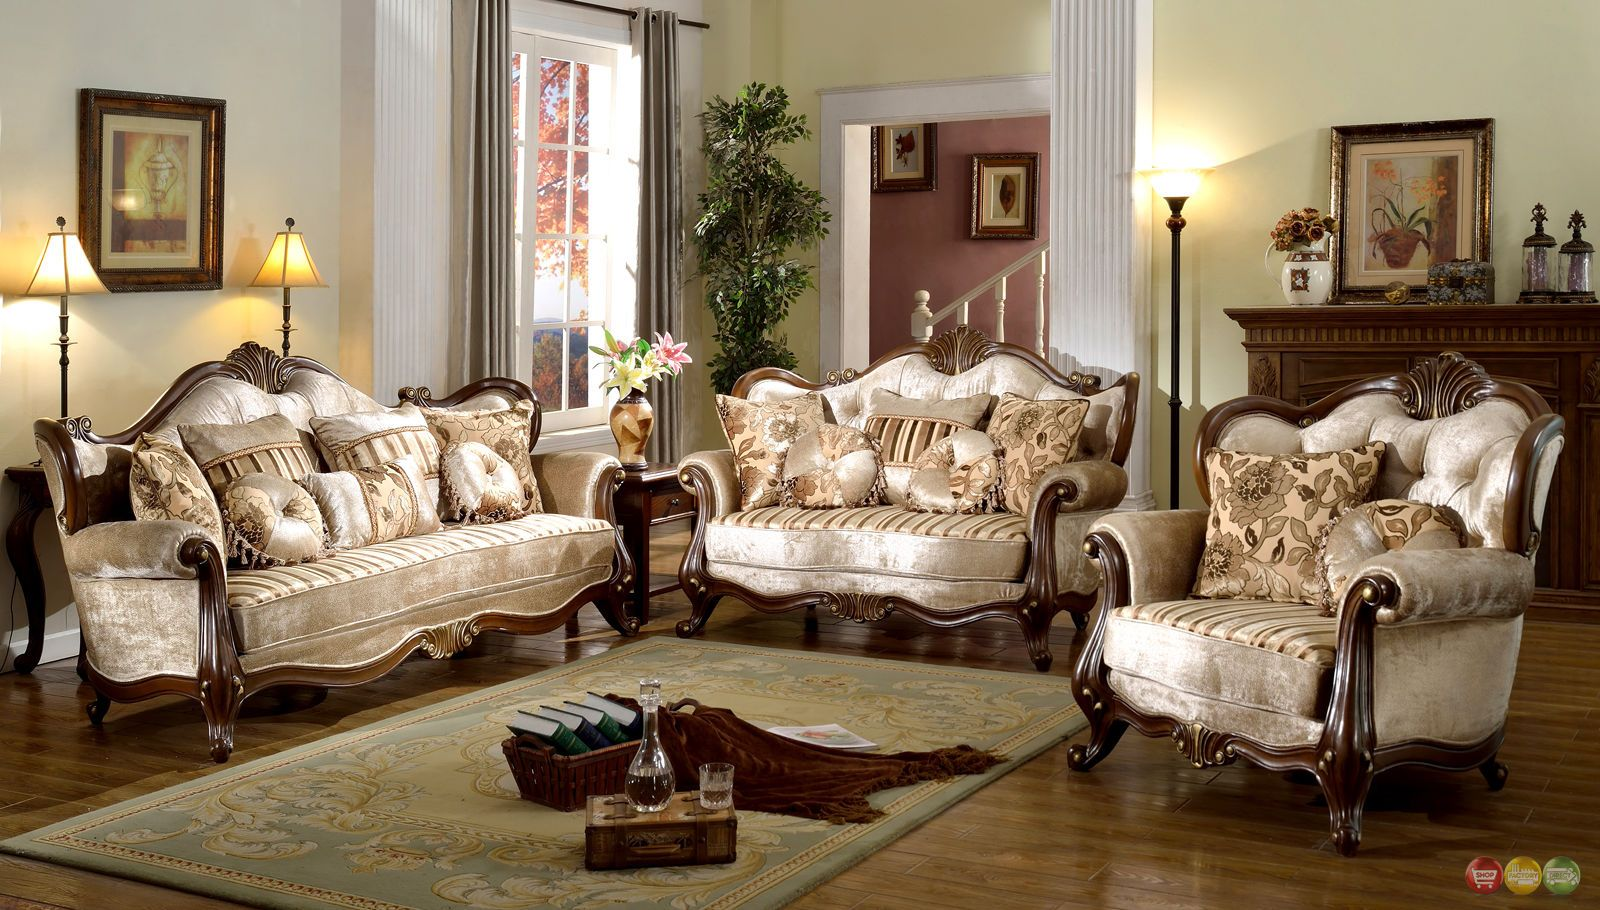 Details about French Provincial Formal Antique Style 2pc ...